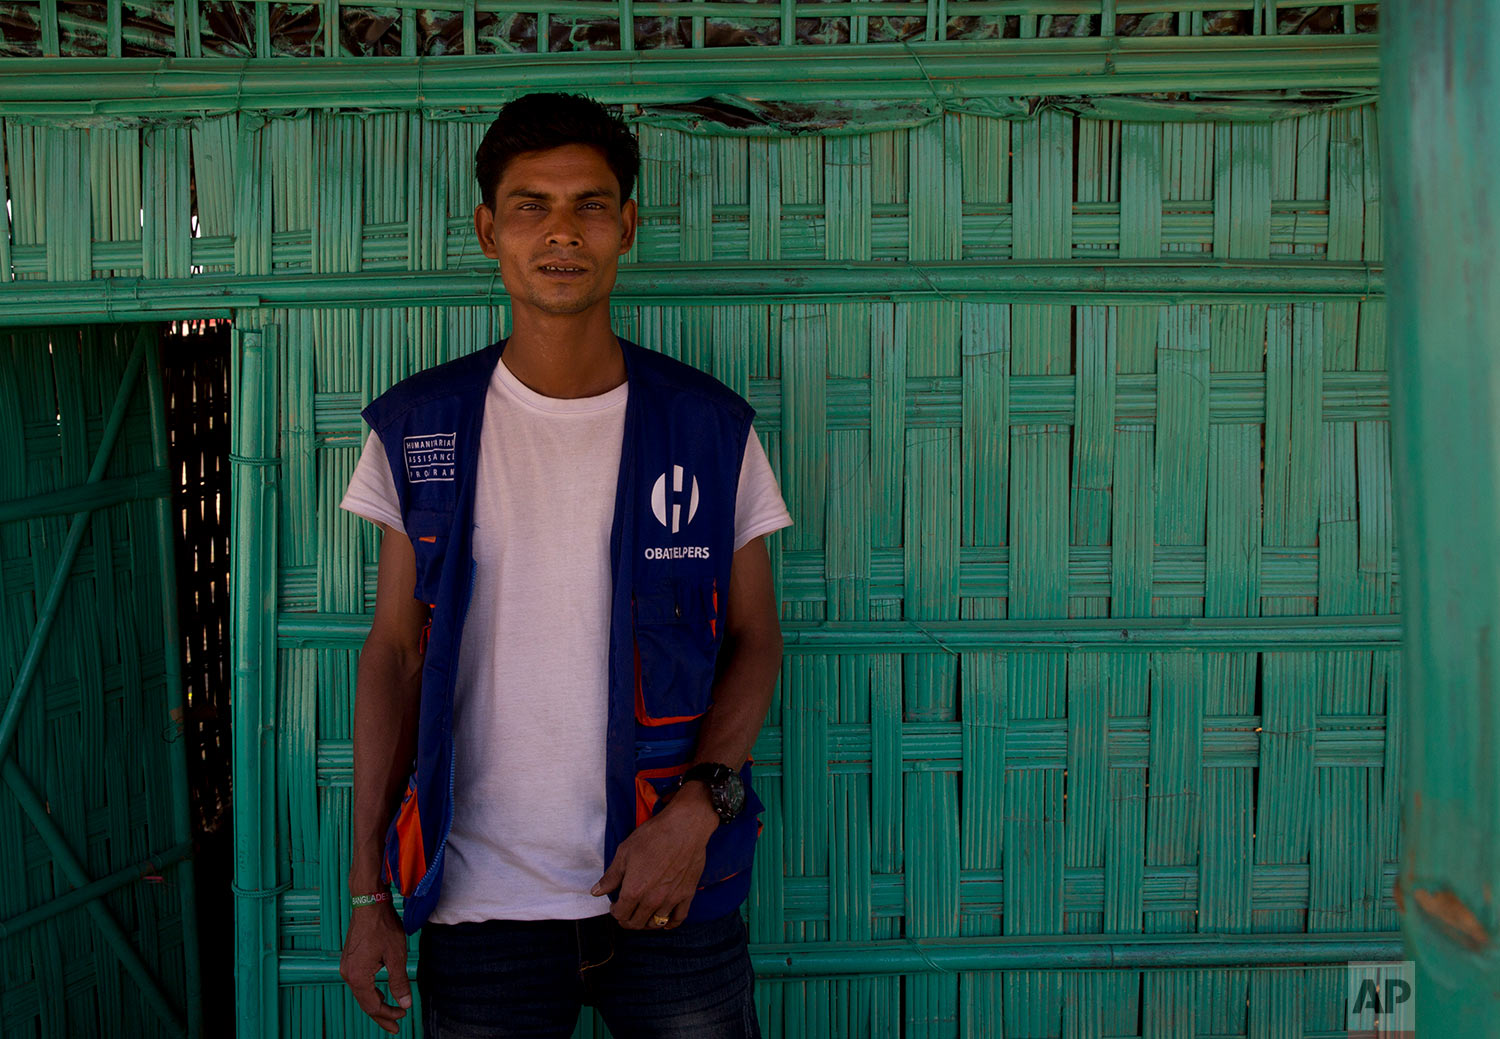 """In this Tuesday, Jan. 23, 2018, photo, Mohammad Younus, 30, who is second time refugee poses for a photograph at BaluKhali refugee camp 50 kilometres (32 miles) from, Cox's Bazar, Bangladesh. Younus says """"The Buddhists were torturing us, beating us and cutting us up. My parents couldn't take it so they came here."""" (AP Photo/Manish Swarup)  See these photos on AP Images"""